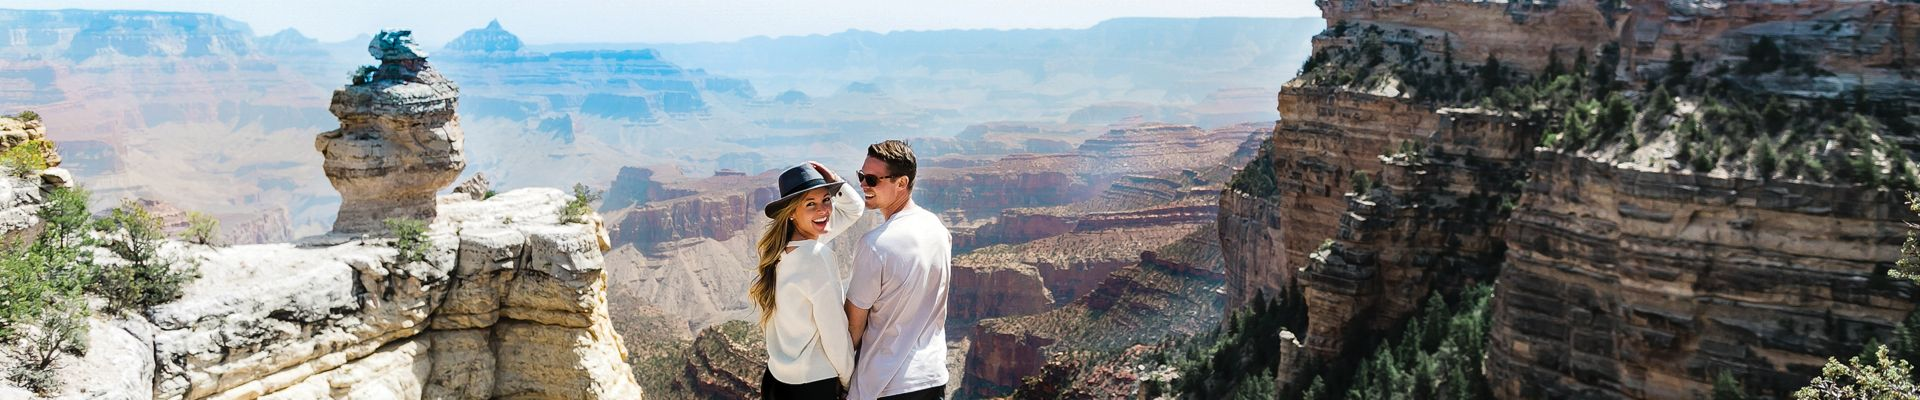 Marvel at the mesmerizing American Southwest on one of Papillon's day tours in Las Vegas to the Grand Canyon and beyond.